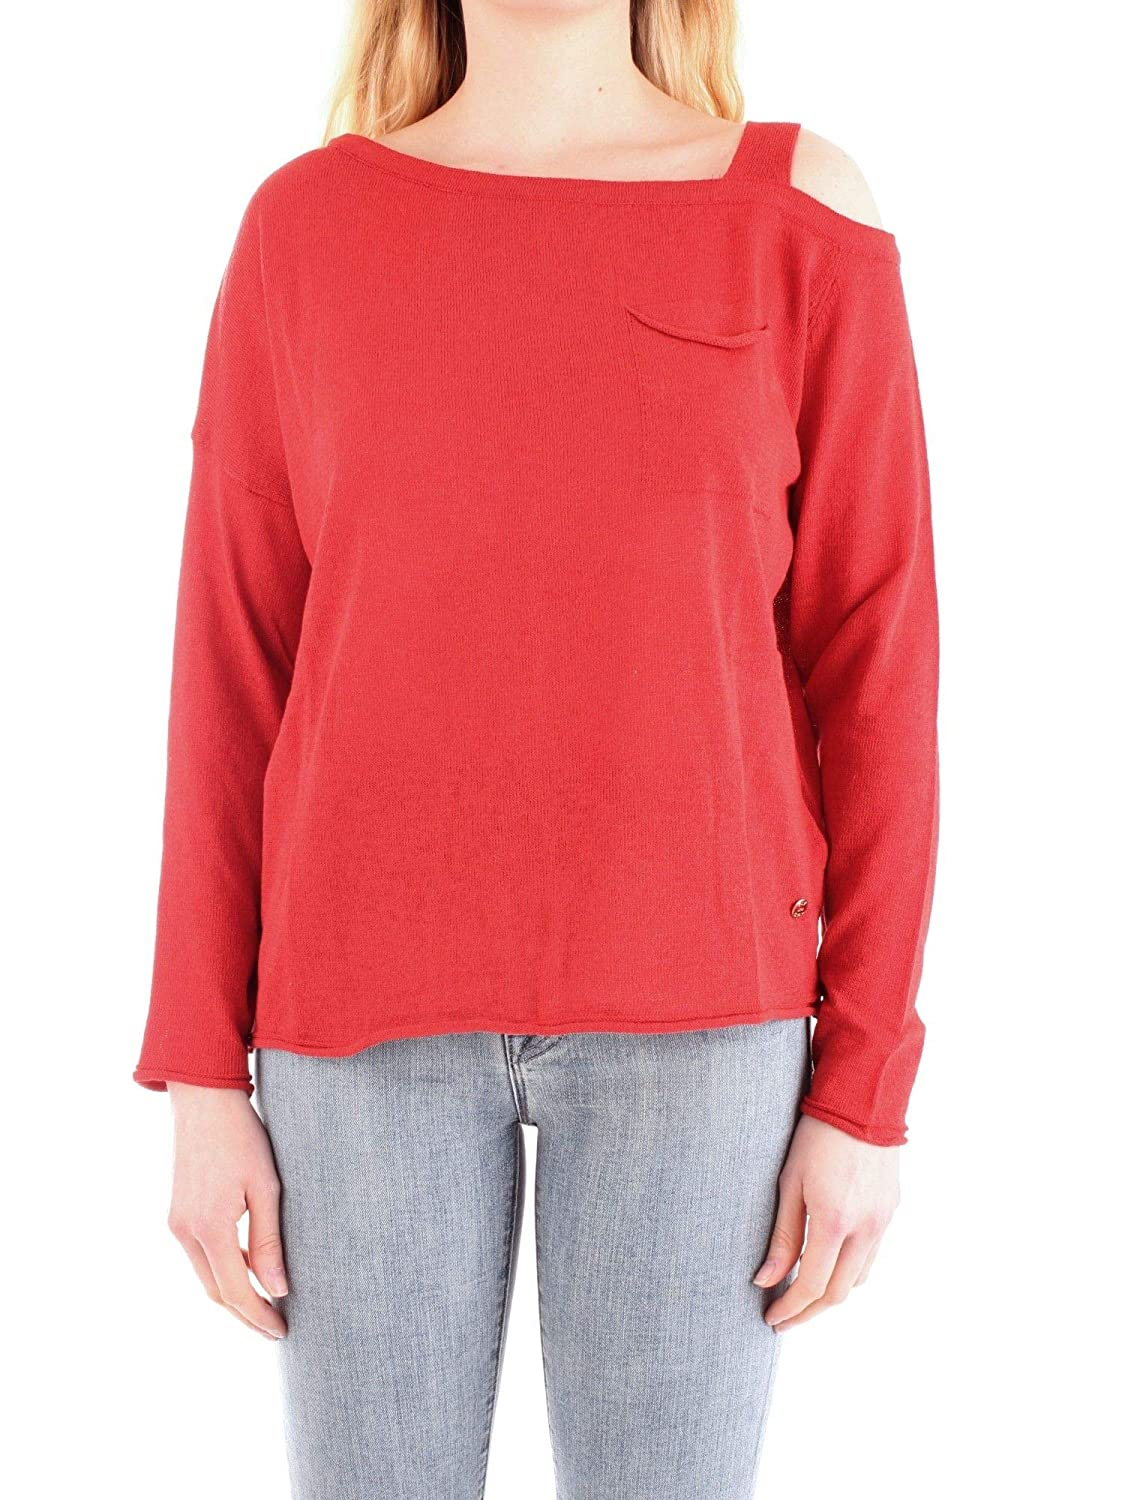 Fly Girl Women's 1043901red Red Cotton Jumper